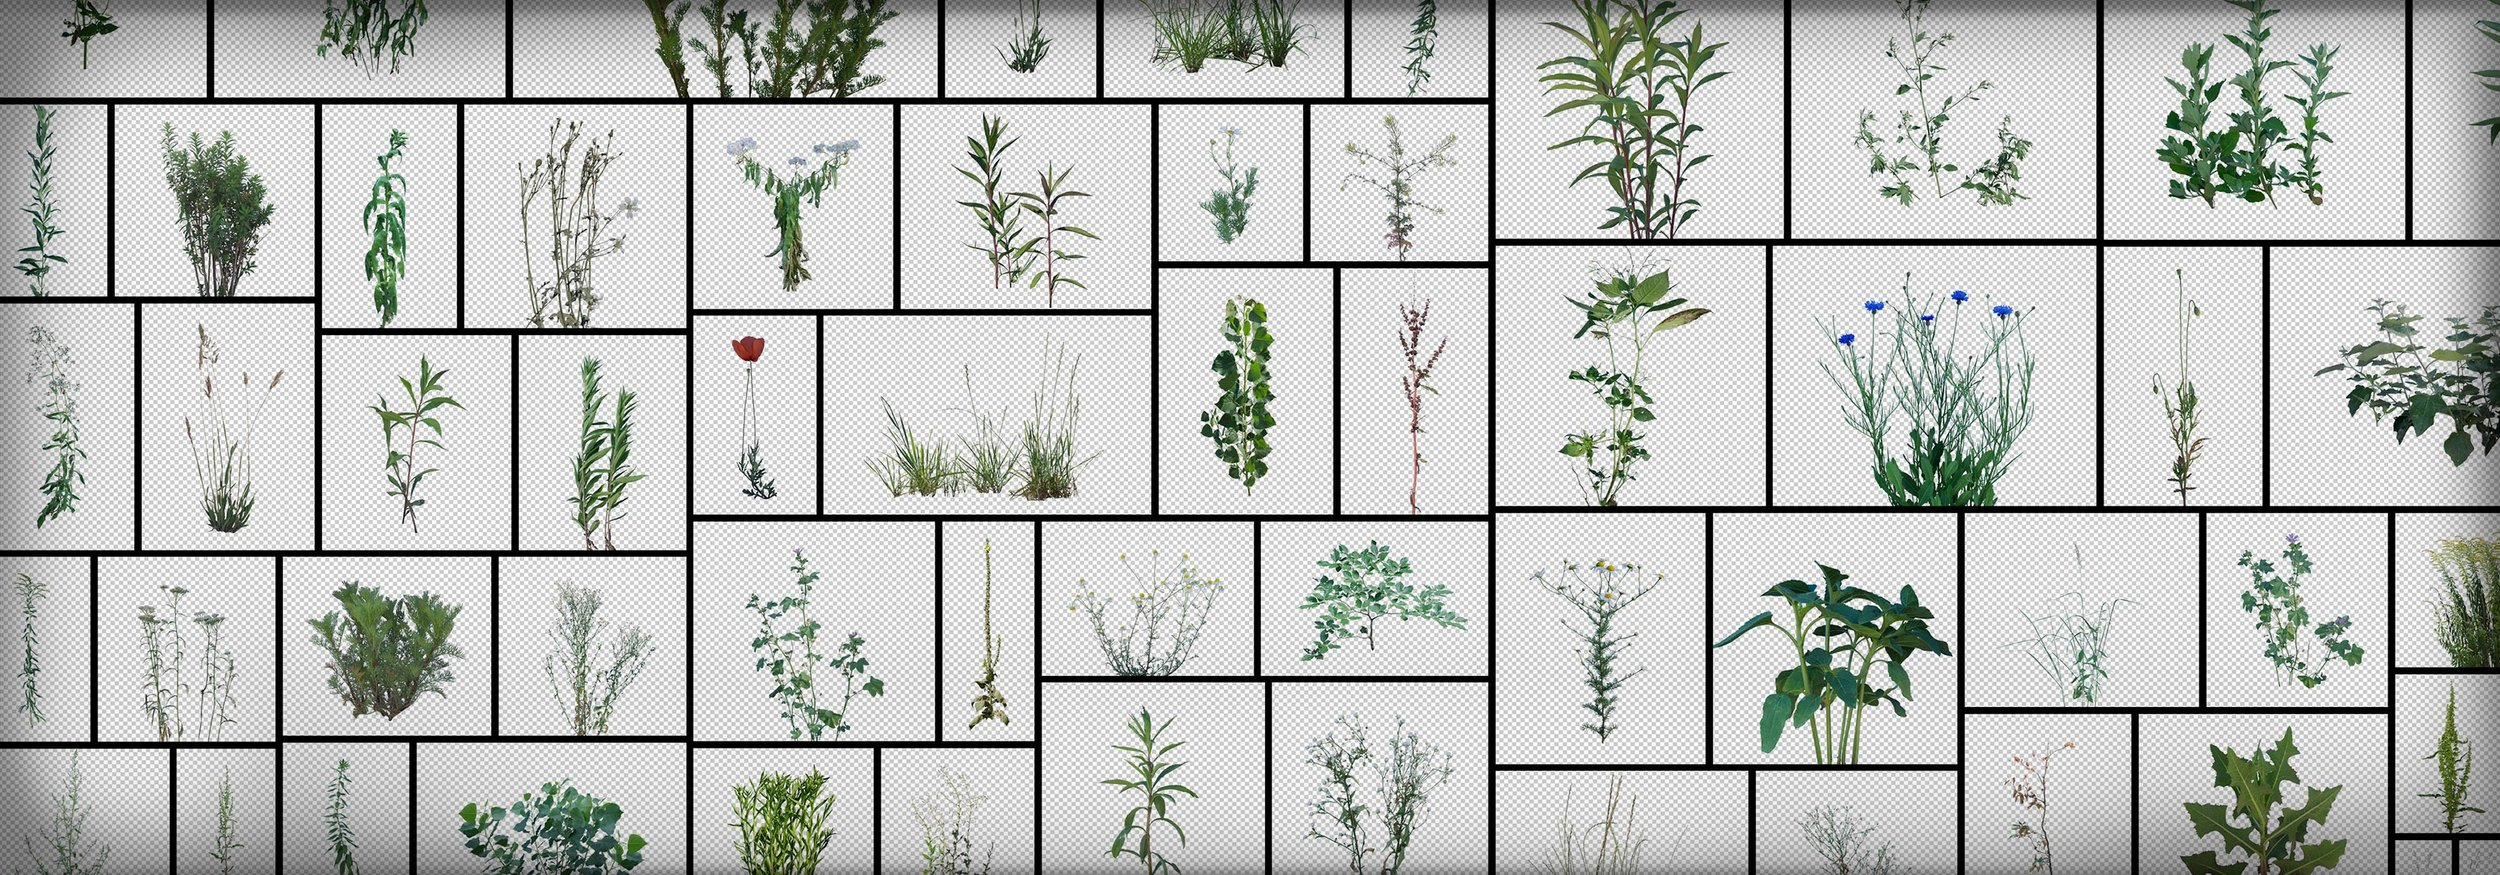 Plants Garden Grass Foliage Weeds Masked PNG